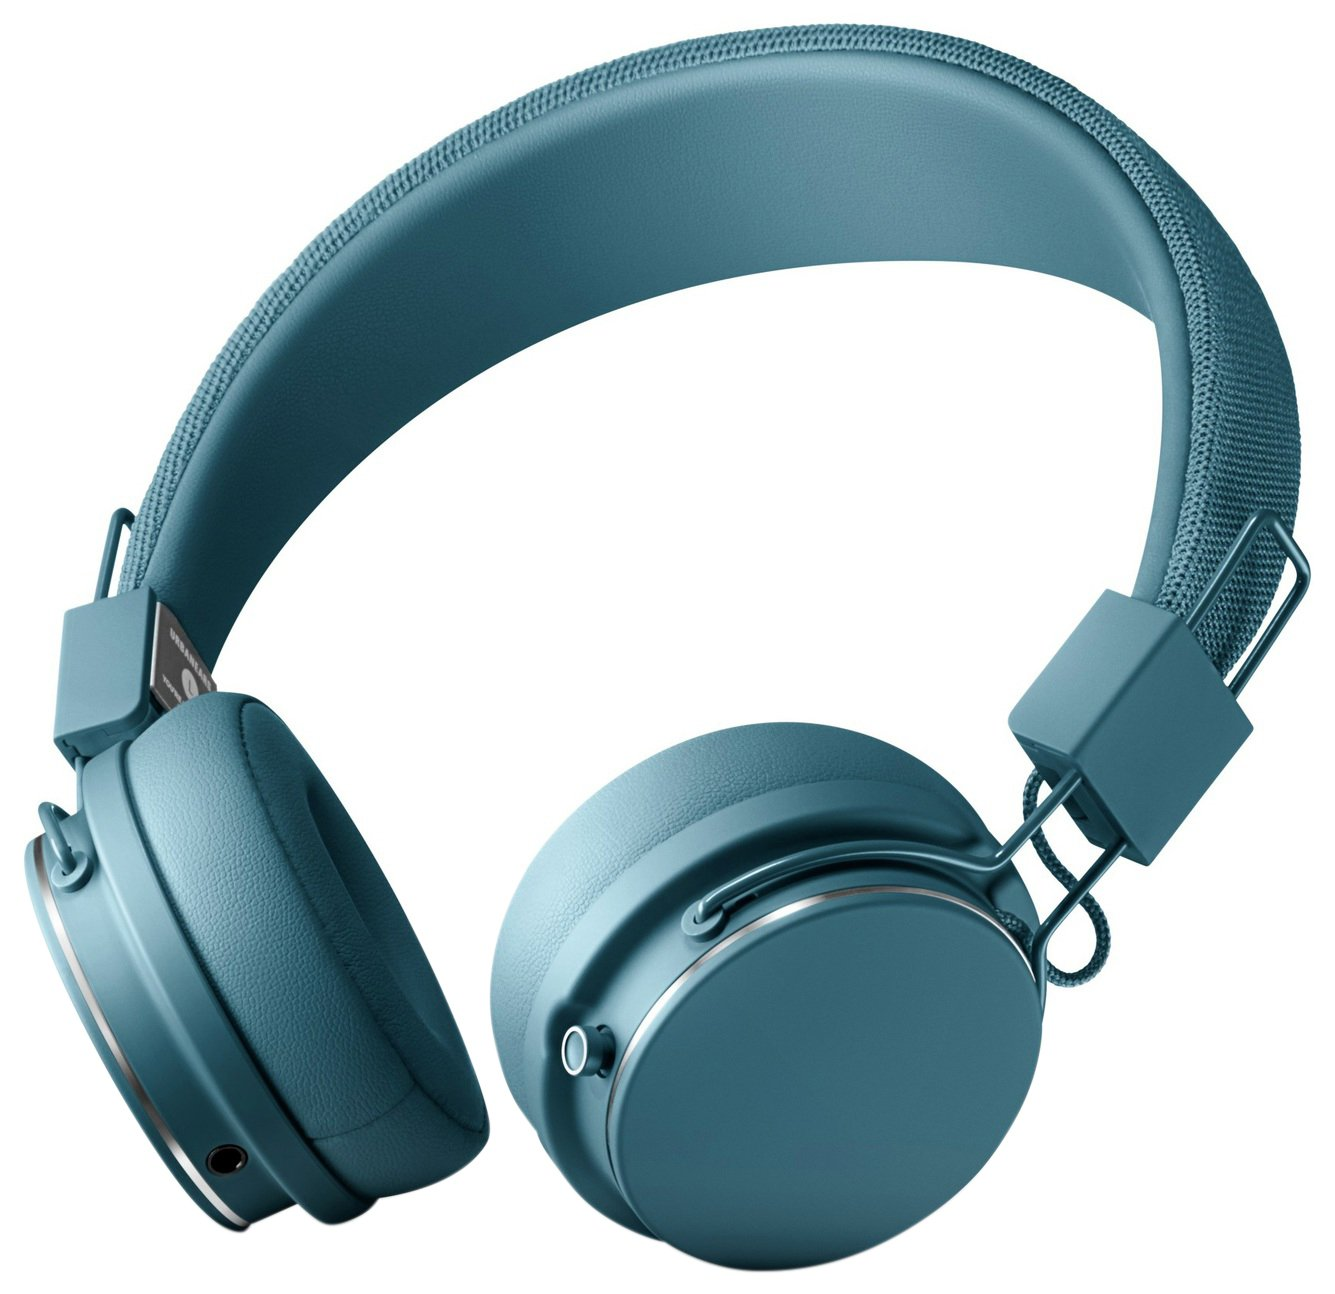 Urbanears Plattan 2 On-Ear Bluetooth Headphones - Indigo